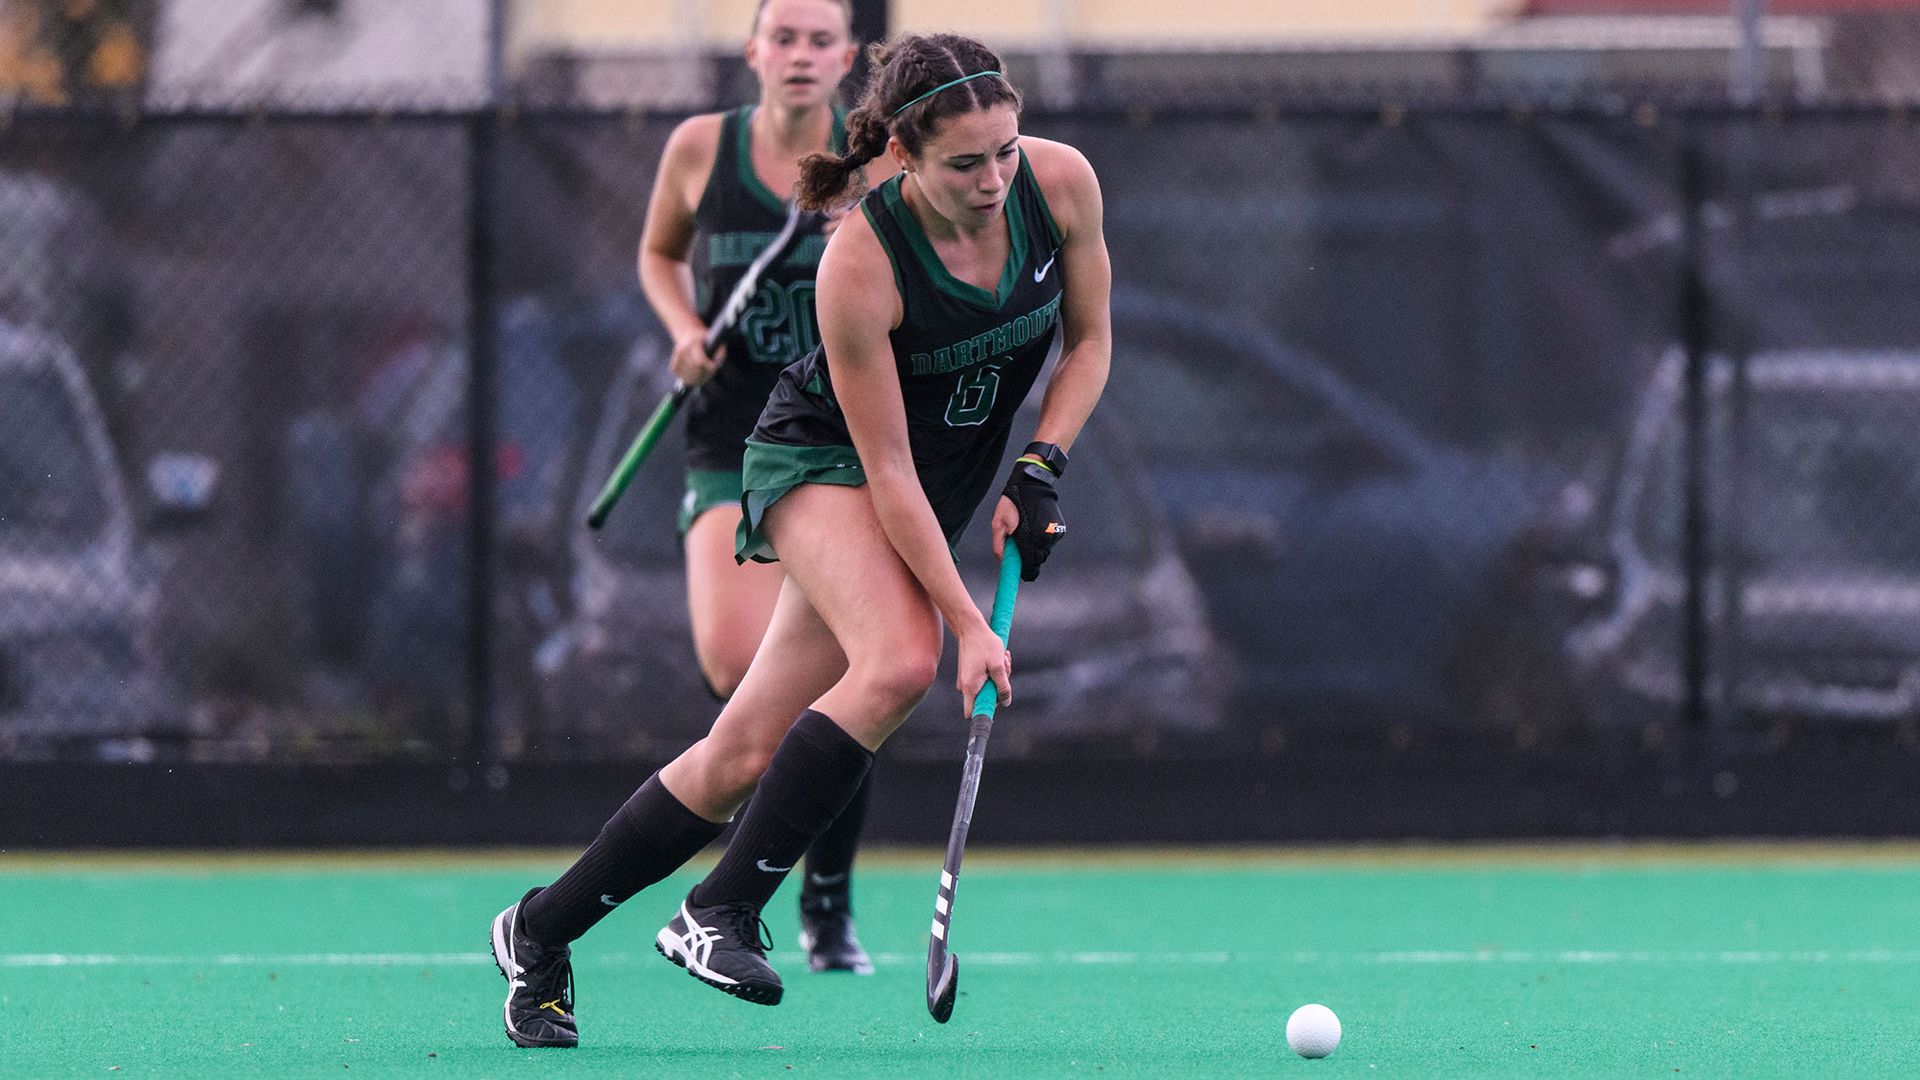 Field Hockey Dartmouth College Athletics